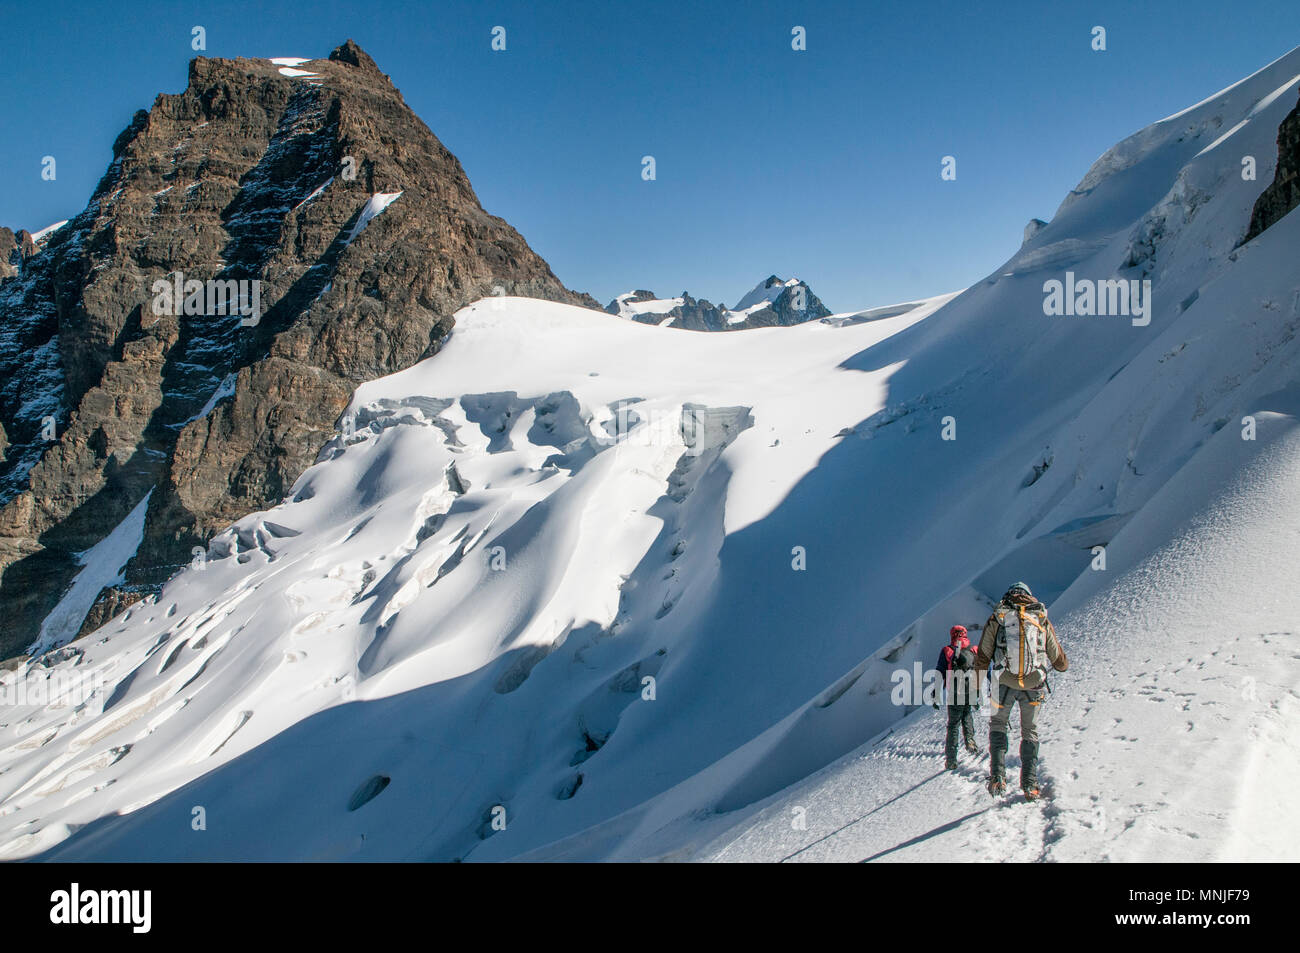 Treking in the Cordillera Real region of the Bolivian Andes. - Stock Image